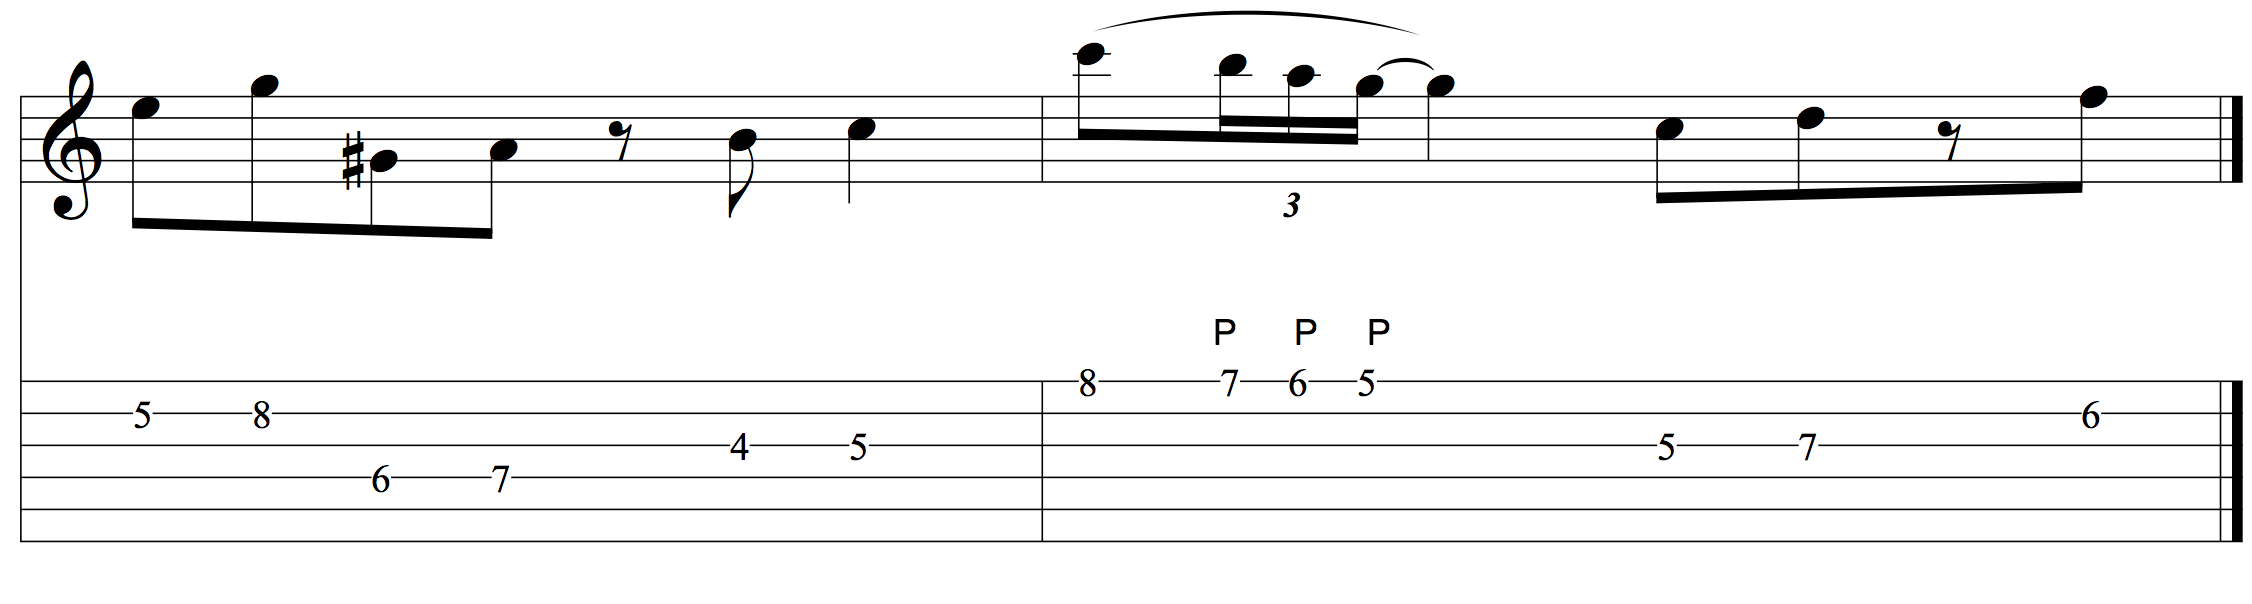 Practicing the three-note chromatic pull-off in context..